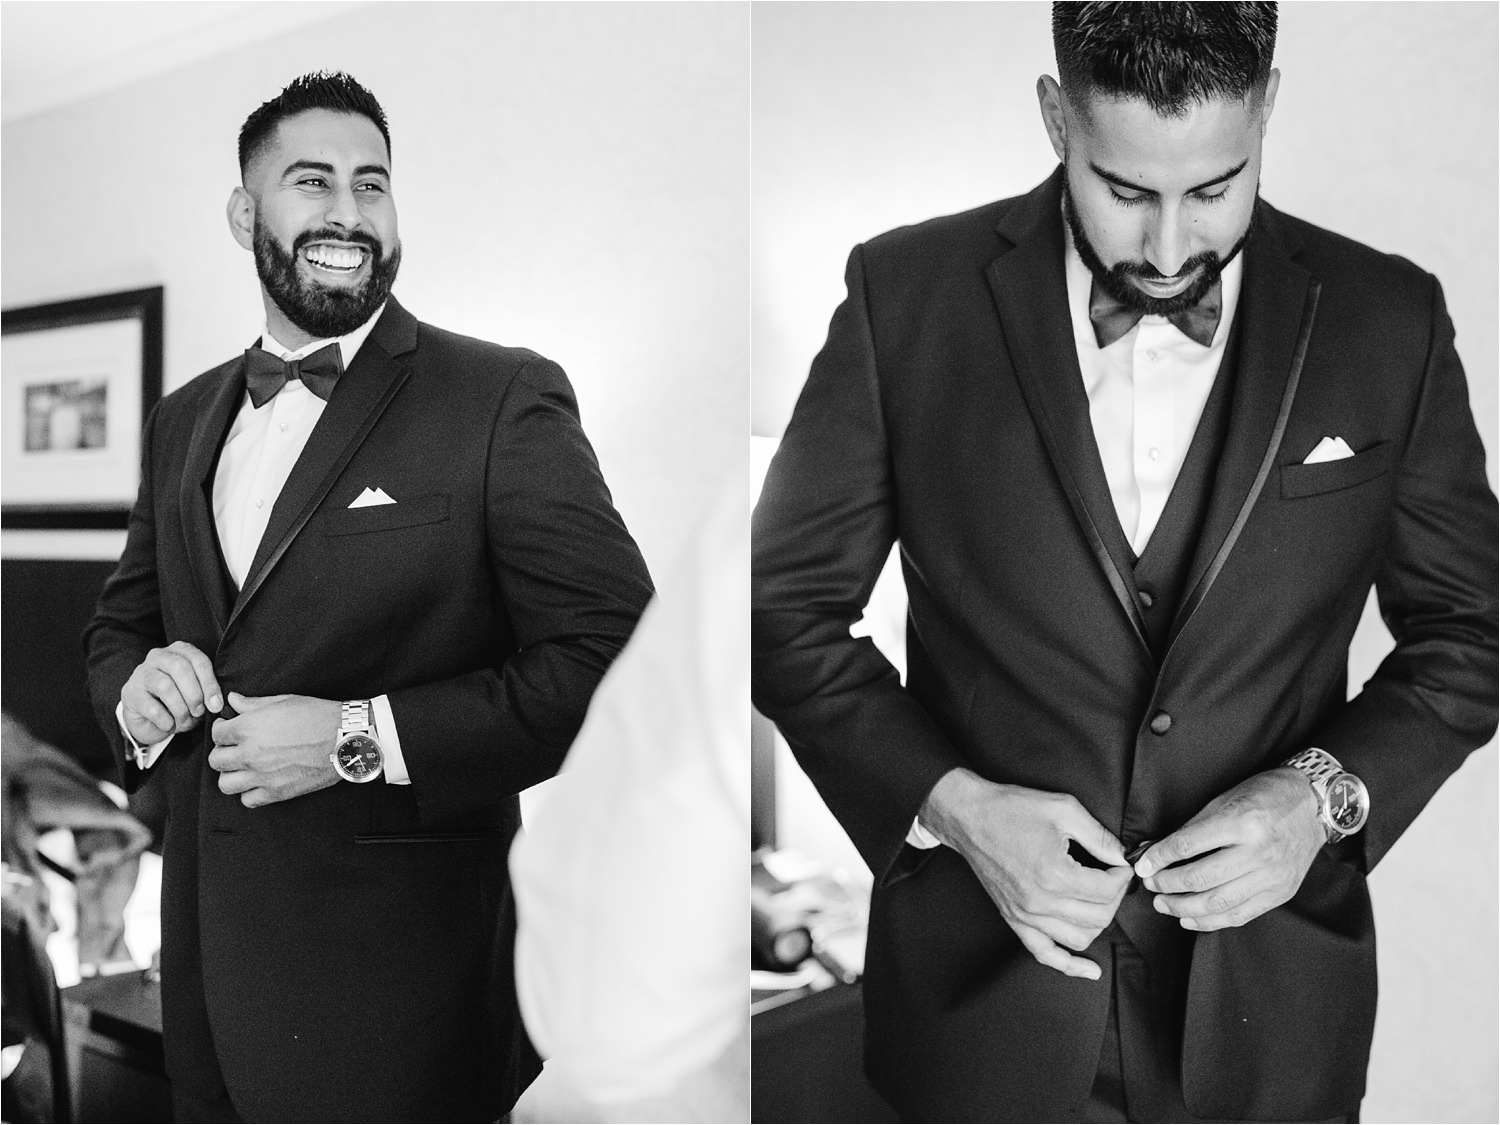 Black and White Groom Portrait - Groom Details - Groom getting ready photos - http://brittneyhannonphotography.com